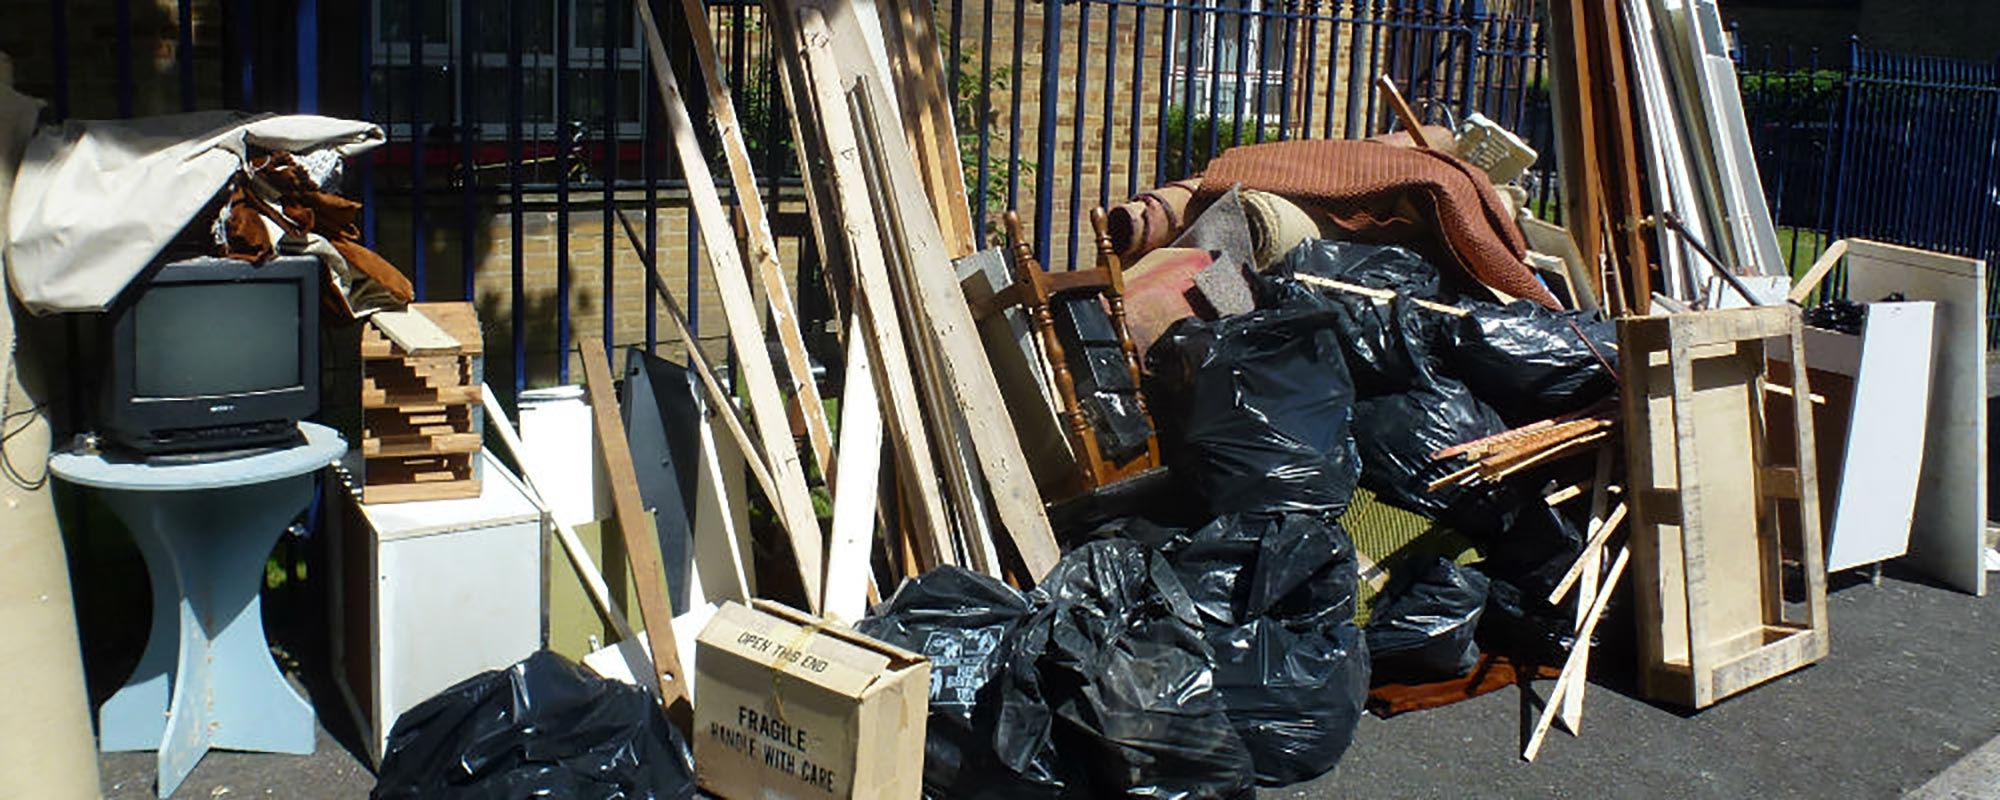 Household Waste London